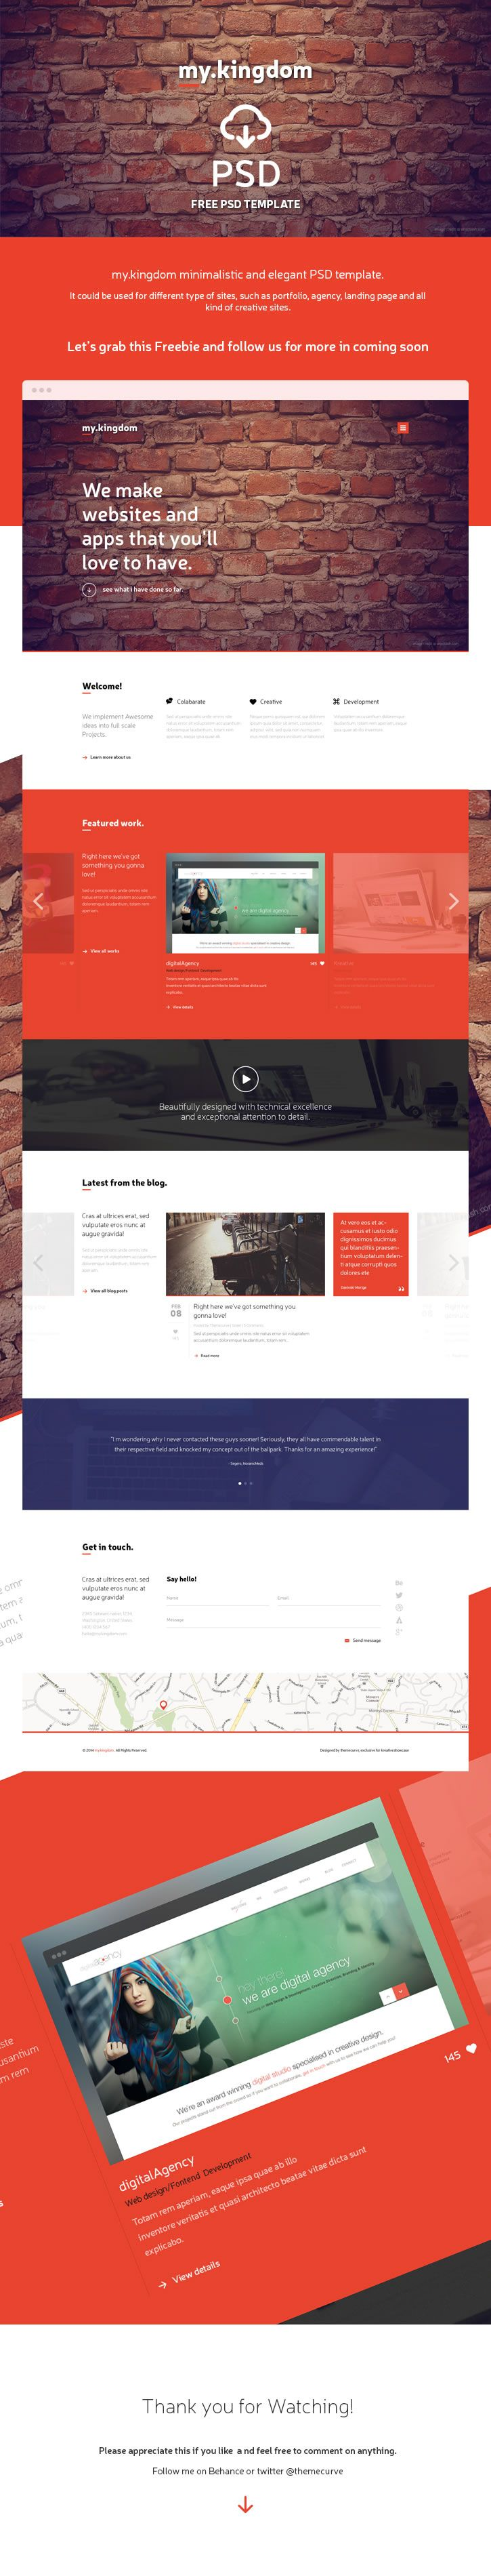 images about psd templates html my kingdom is a one page psd website template from the themecurve team this is bright and spacious design perfect for individuals or startups looking